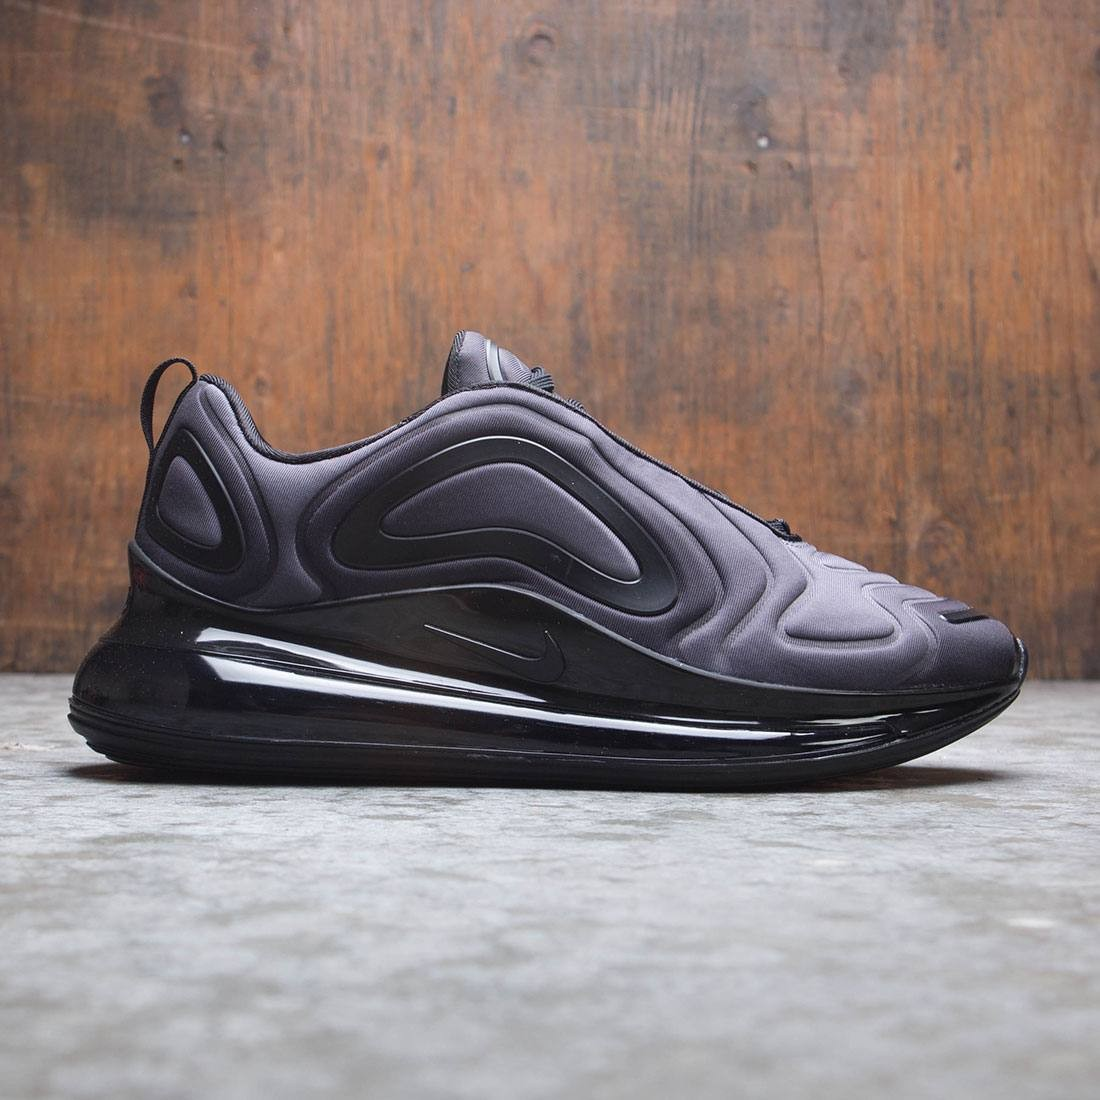 a5277d1edbf3 nike men air max 720 black black anthracite